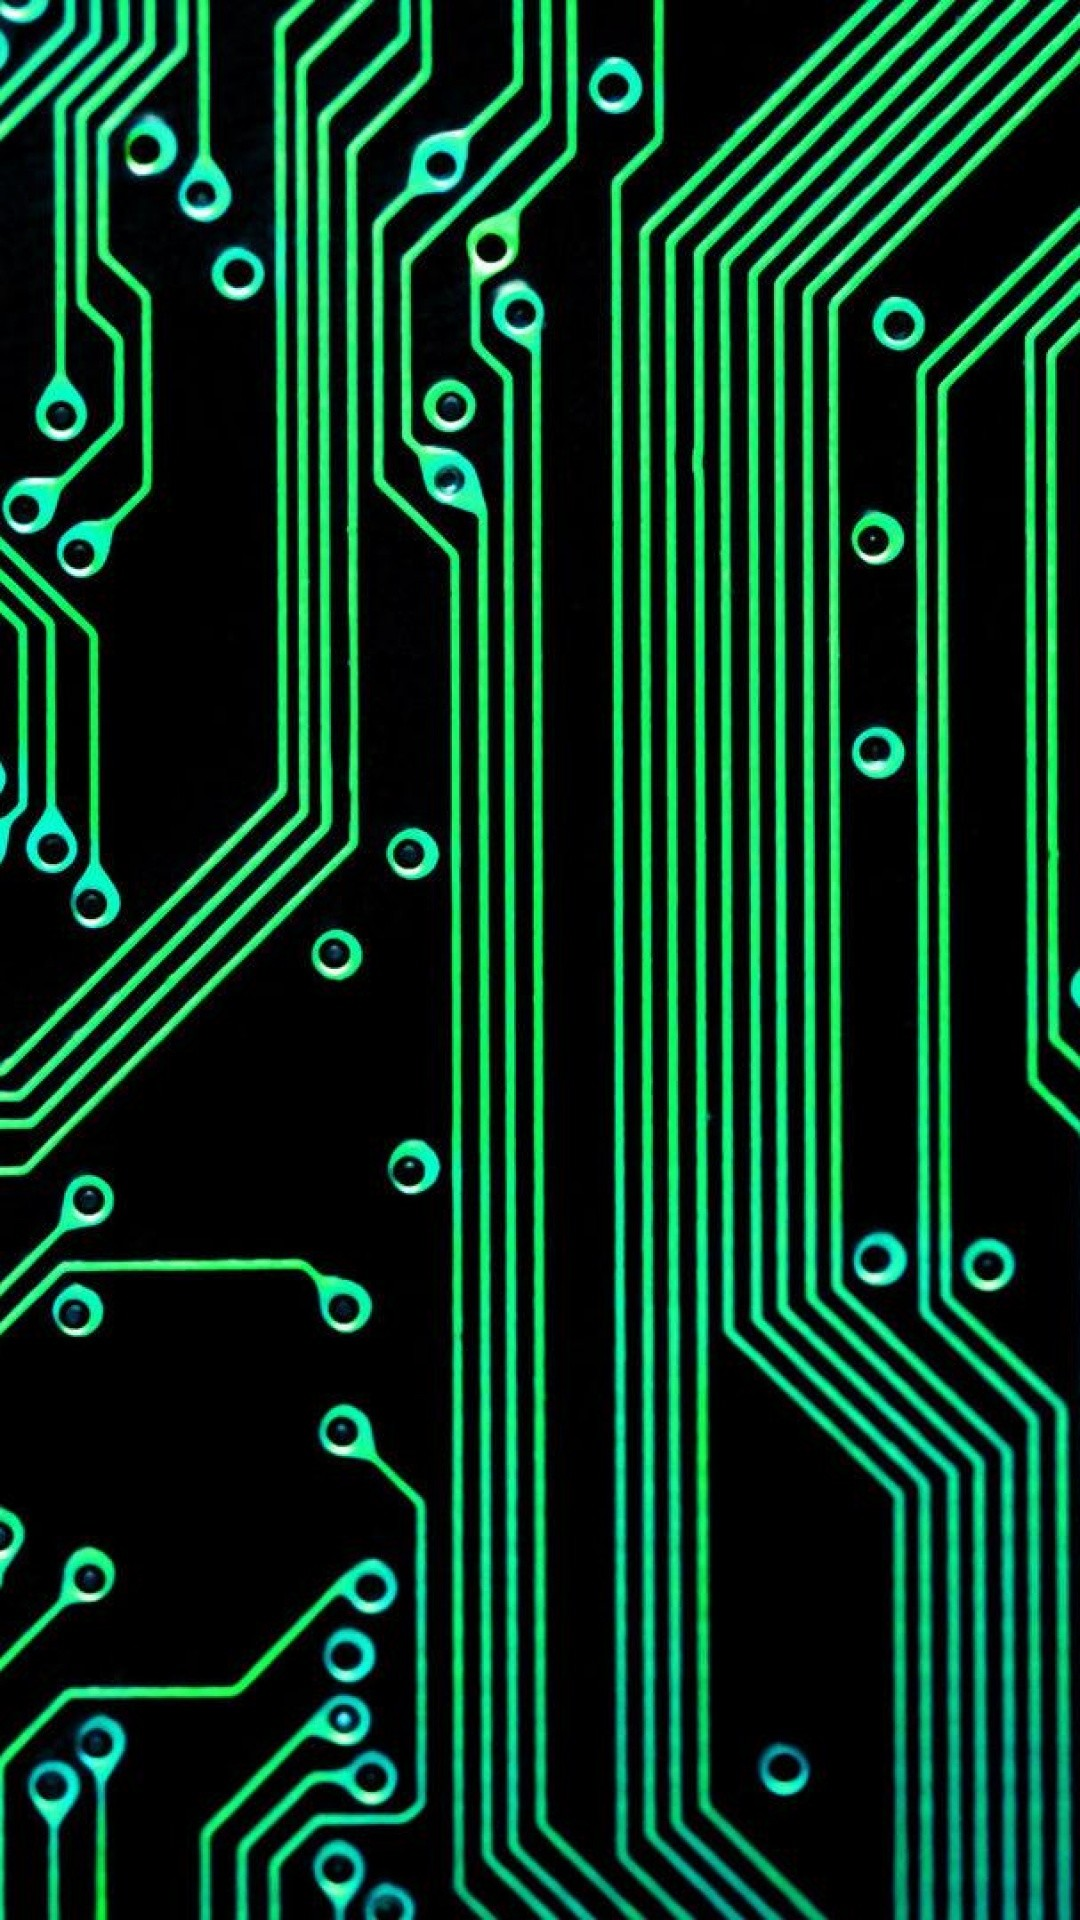 Electronic Circuit Green Black Android Wallpaper …